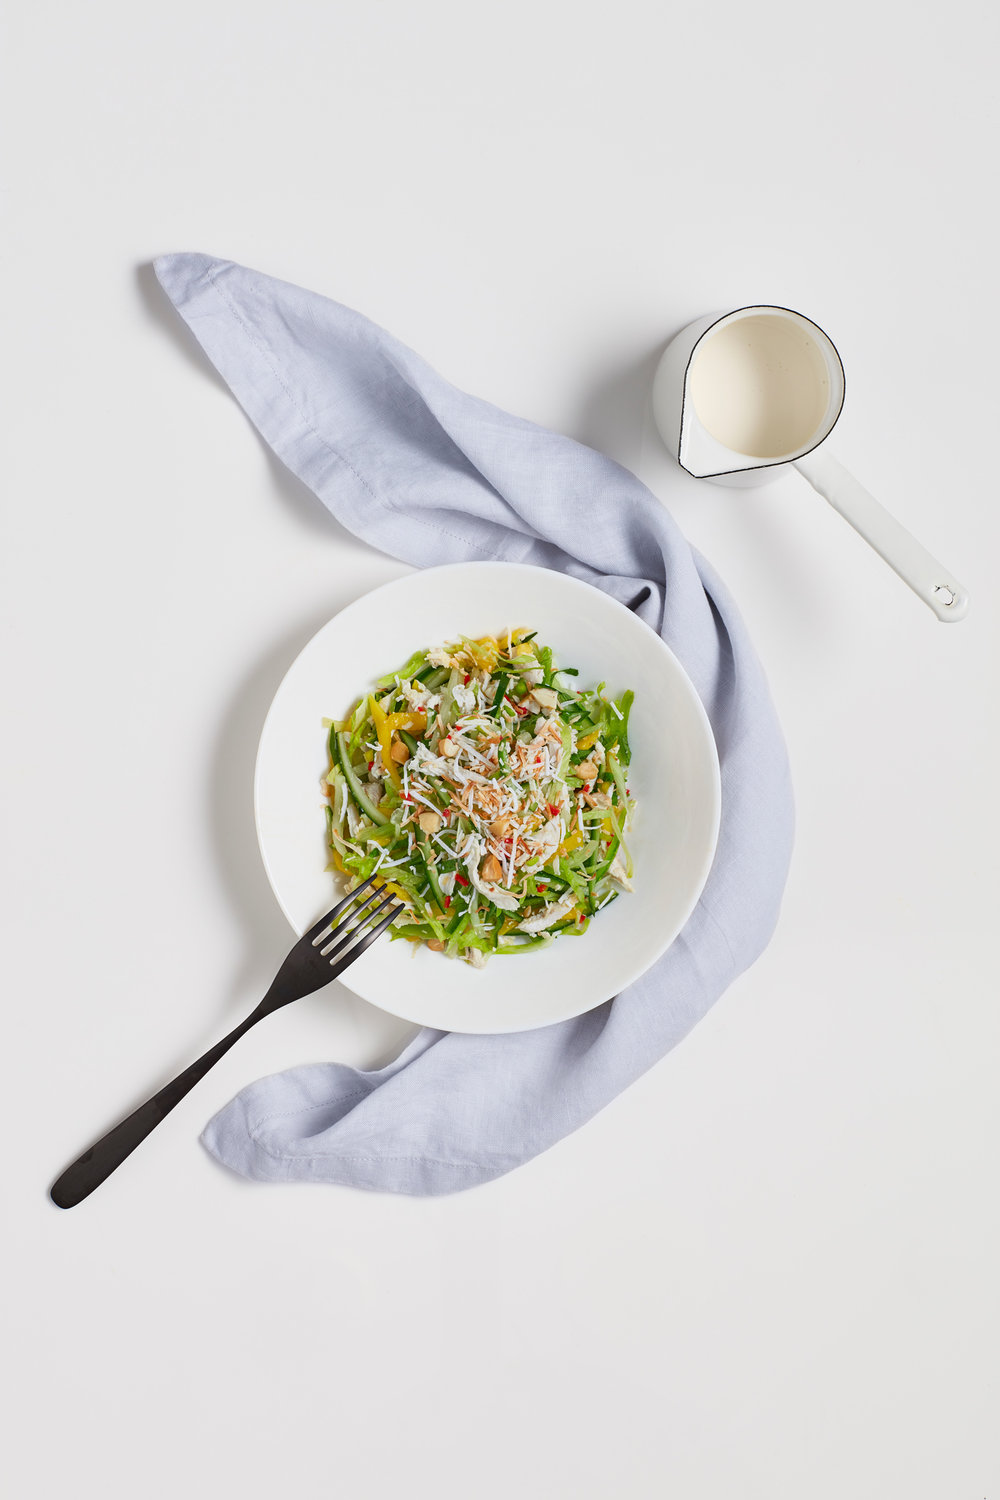 SHREDDED CHICKEN + MANGO SALAD [ART DIRECTION + STYLING] PHOTOGRAPHY BY NIC GOSSAGE